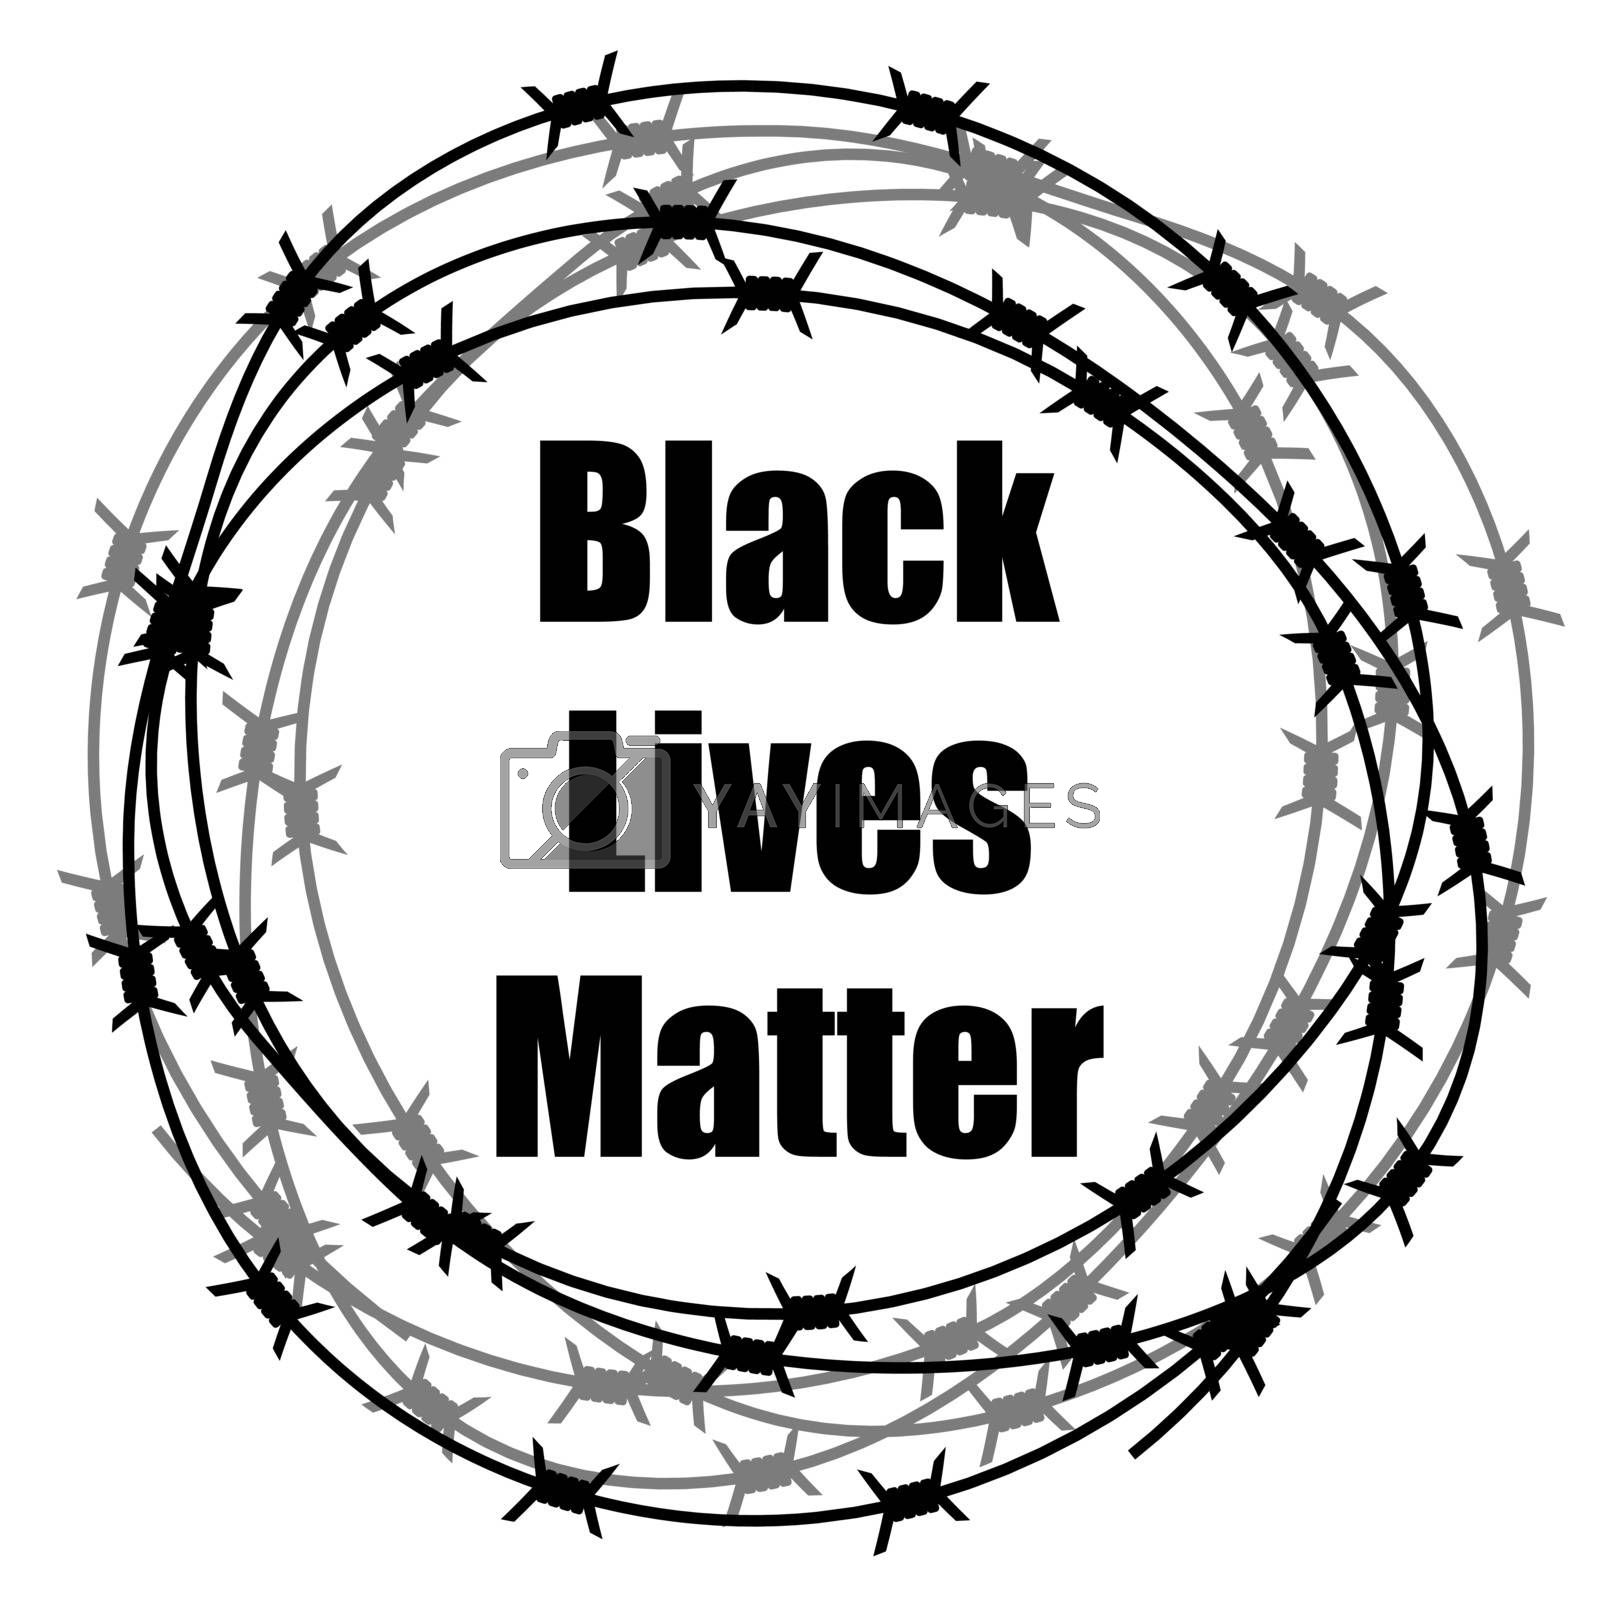 Black Lives Matter Banner with Barbed Wire for Protest Isolated on White Background.